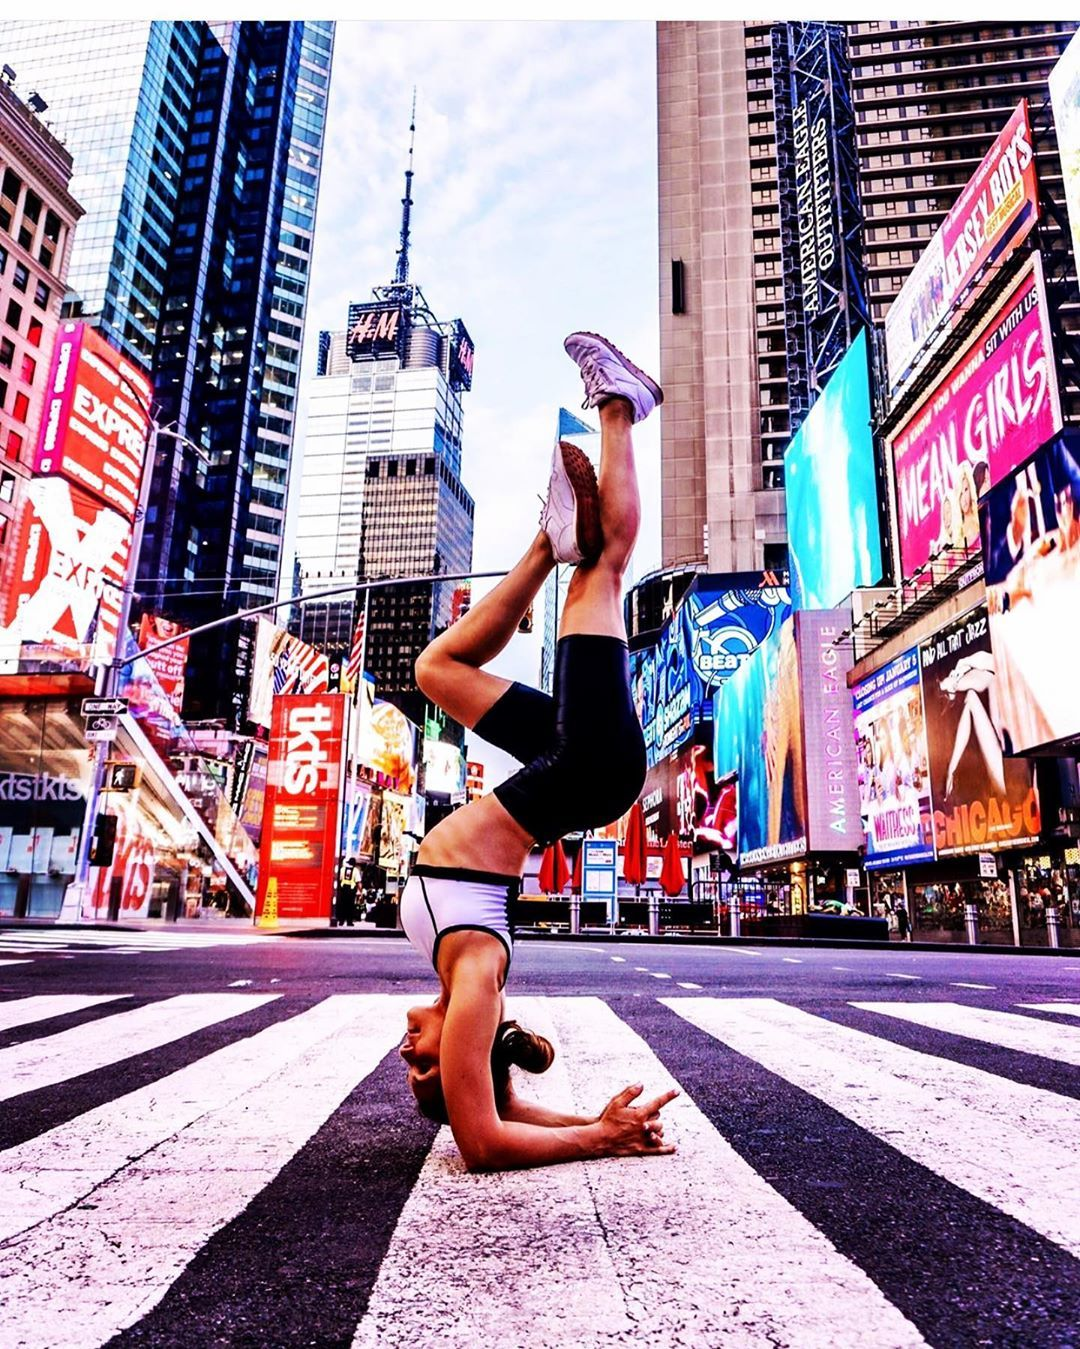 Taking a time out in Times Square. ♥️ New York Forever, baby!!! #yogagirl #yogainspiration #yogapose...